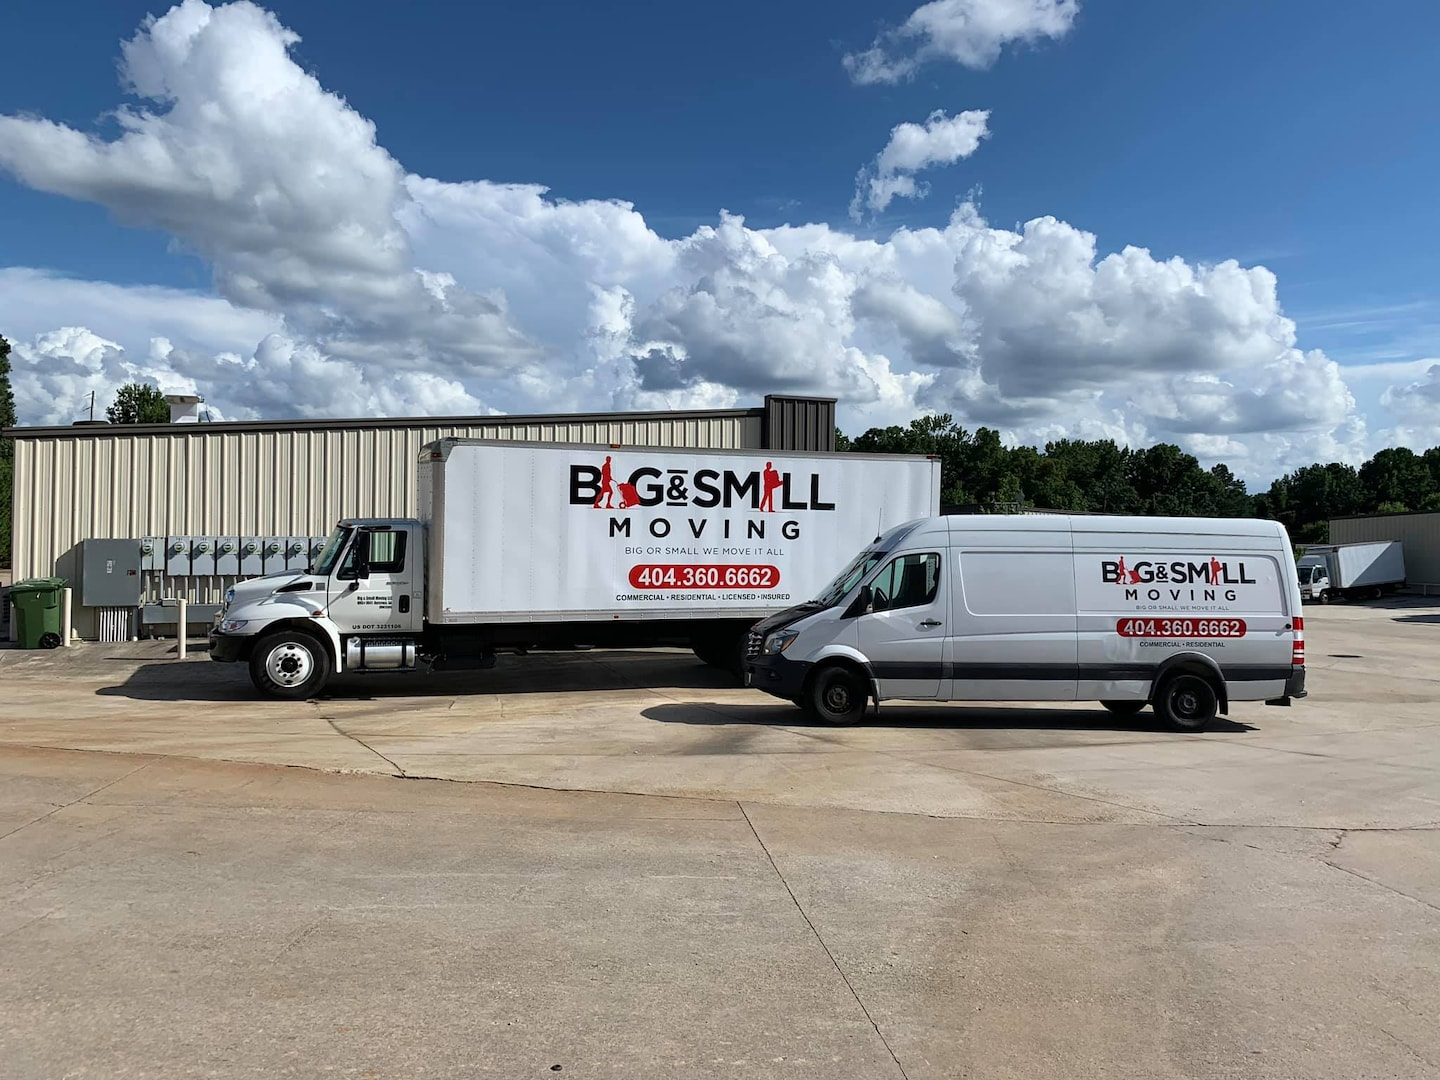 Big and Small Moving, LLC